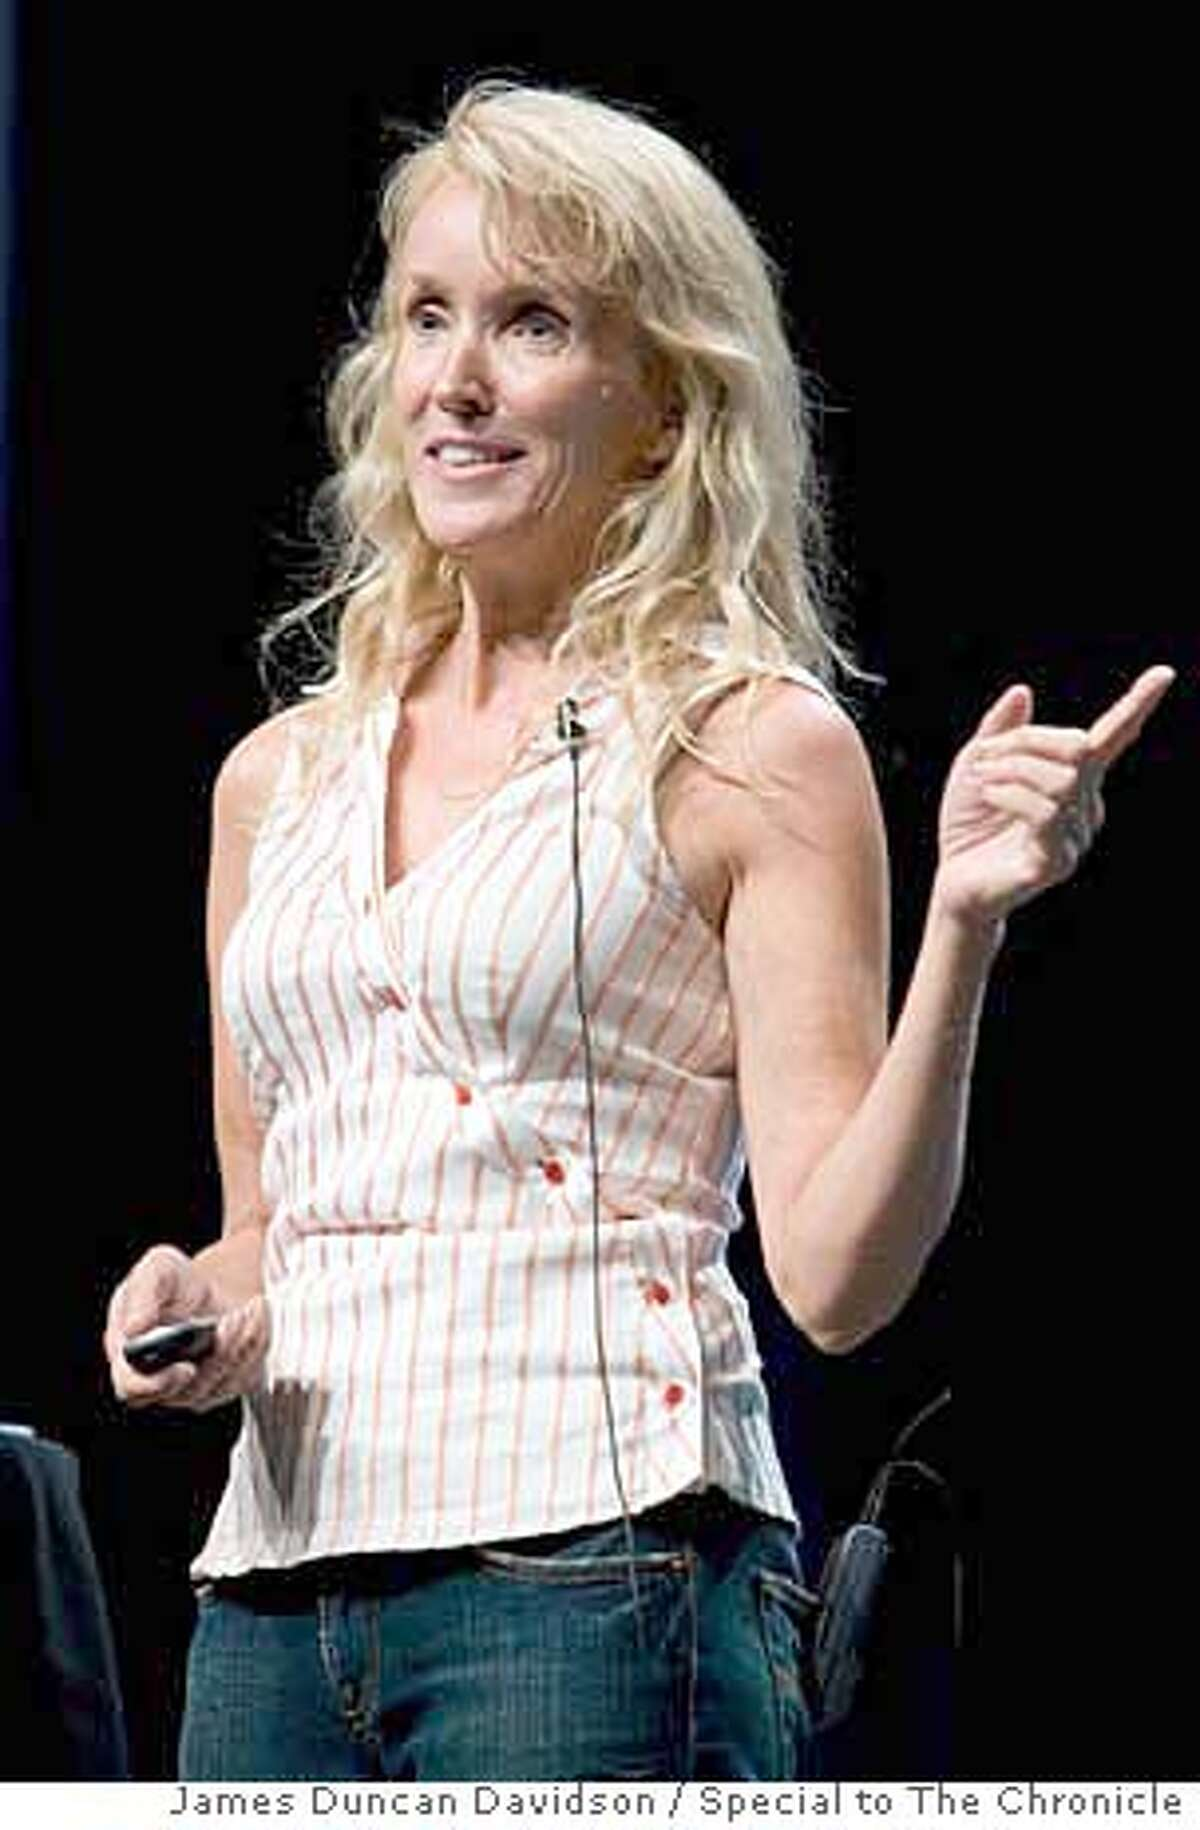 Kathy SIerra speaking at the 2006 O'Reilly Open Source Convention in Portland, Oregon. James Duncan Davidson/Special to The Chronicle